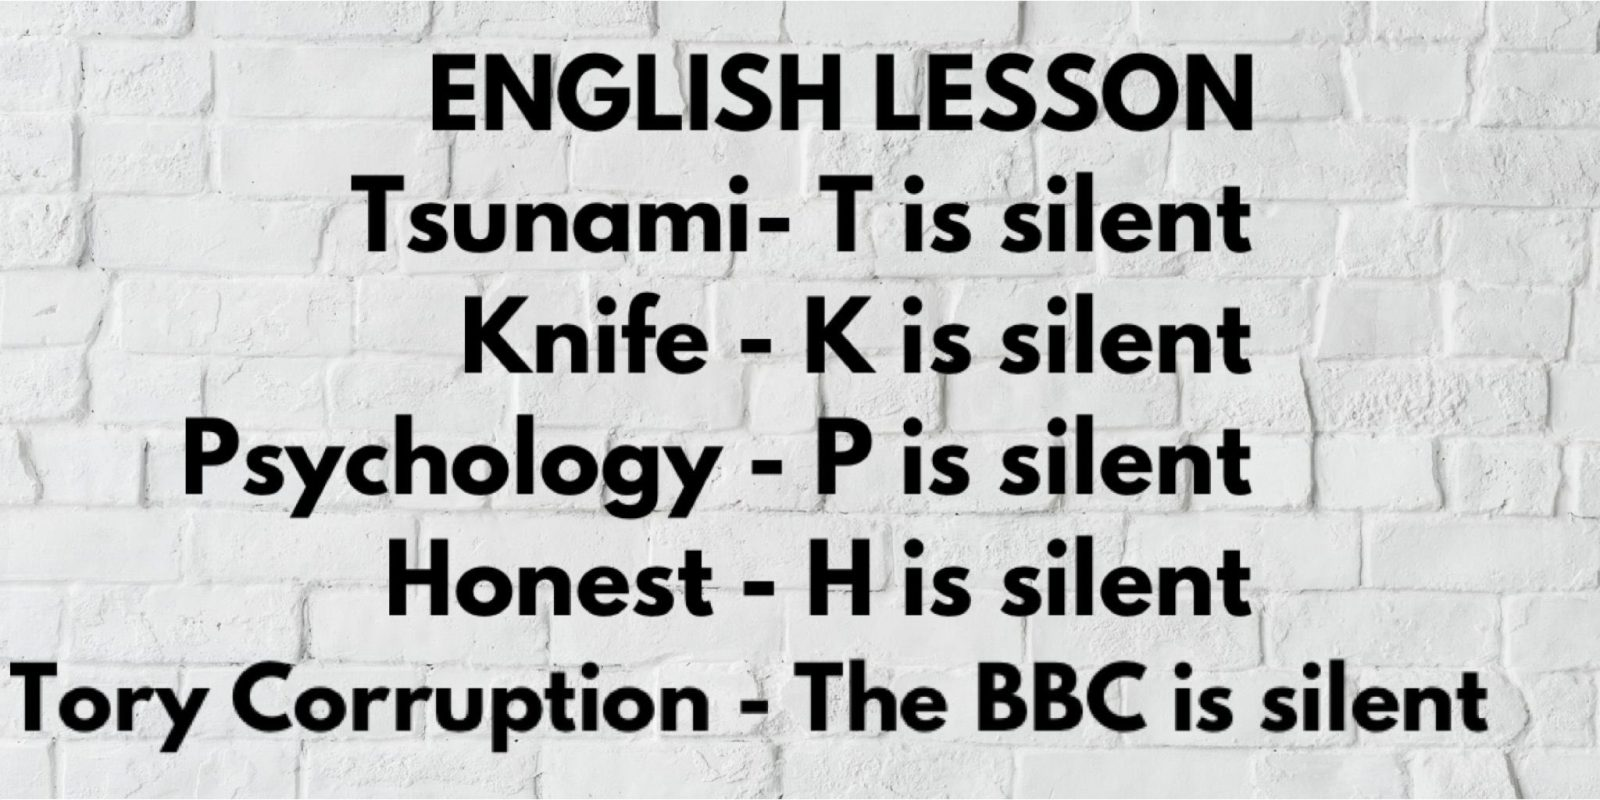 BBC = Bought By Conservatives